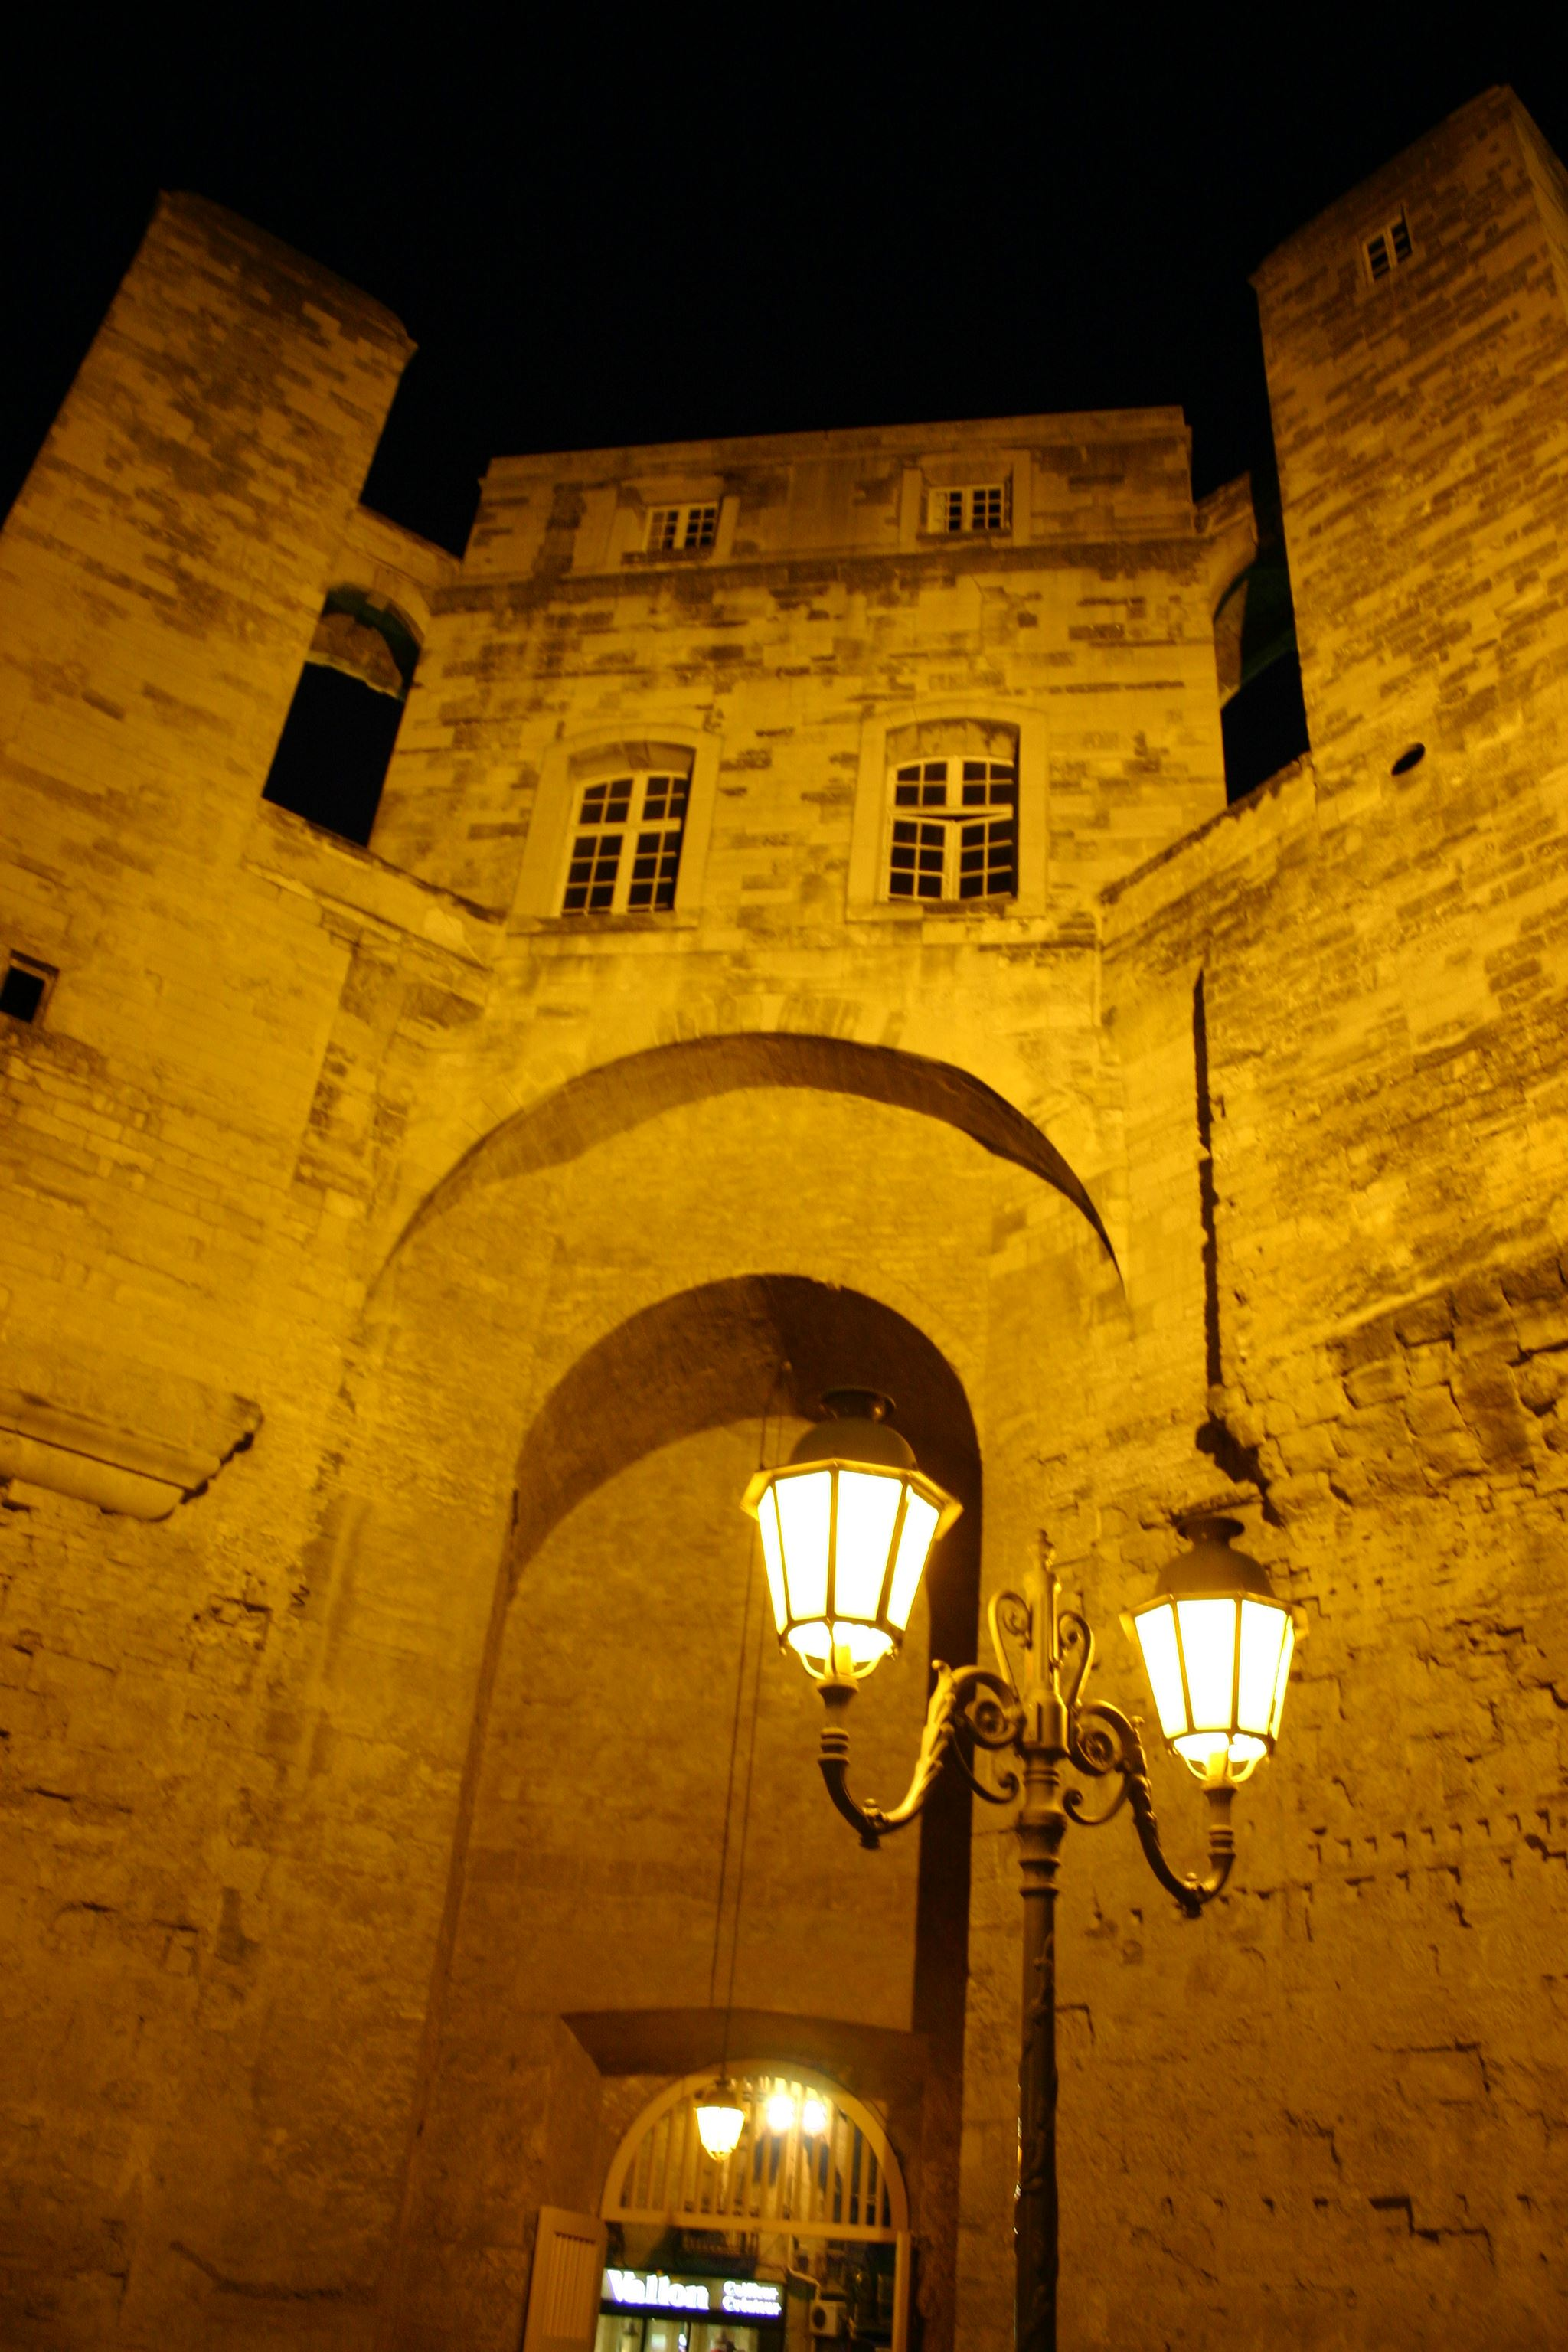 Frenche guided tour: The Tower of Babote